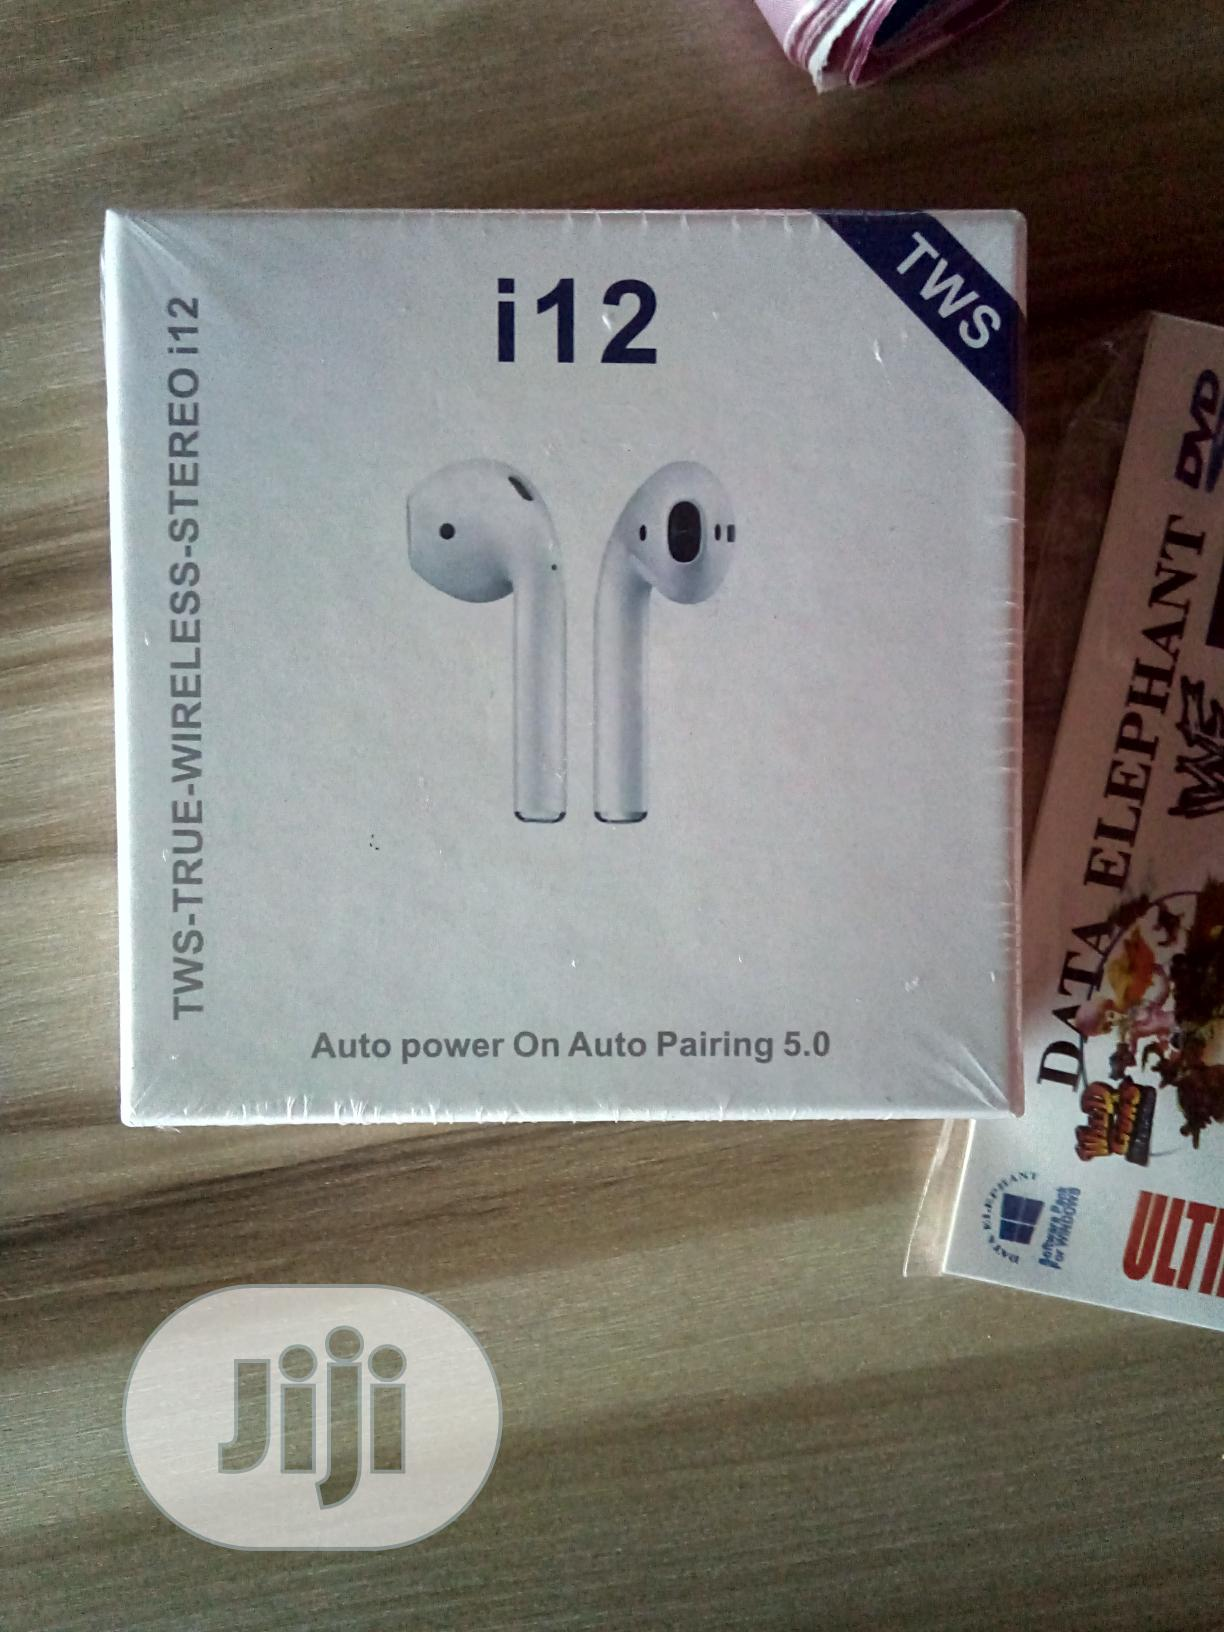 I12 Tws Headsets | Accessories for Mobile Phones & Tablets for sale in Alimosho, Lagos State, Nigeria